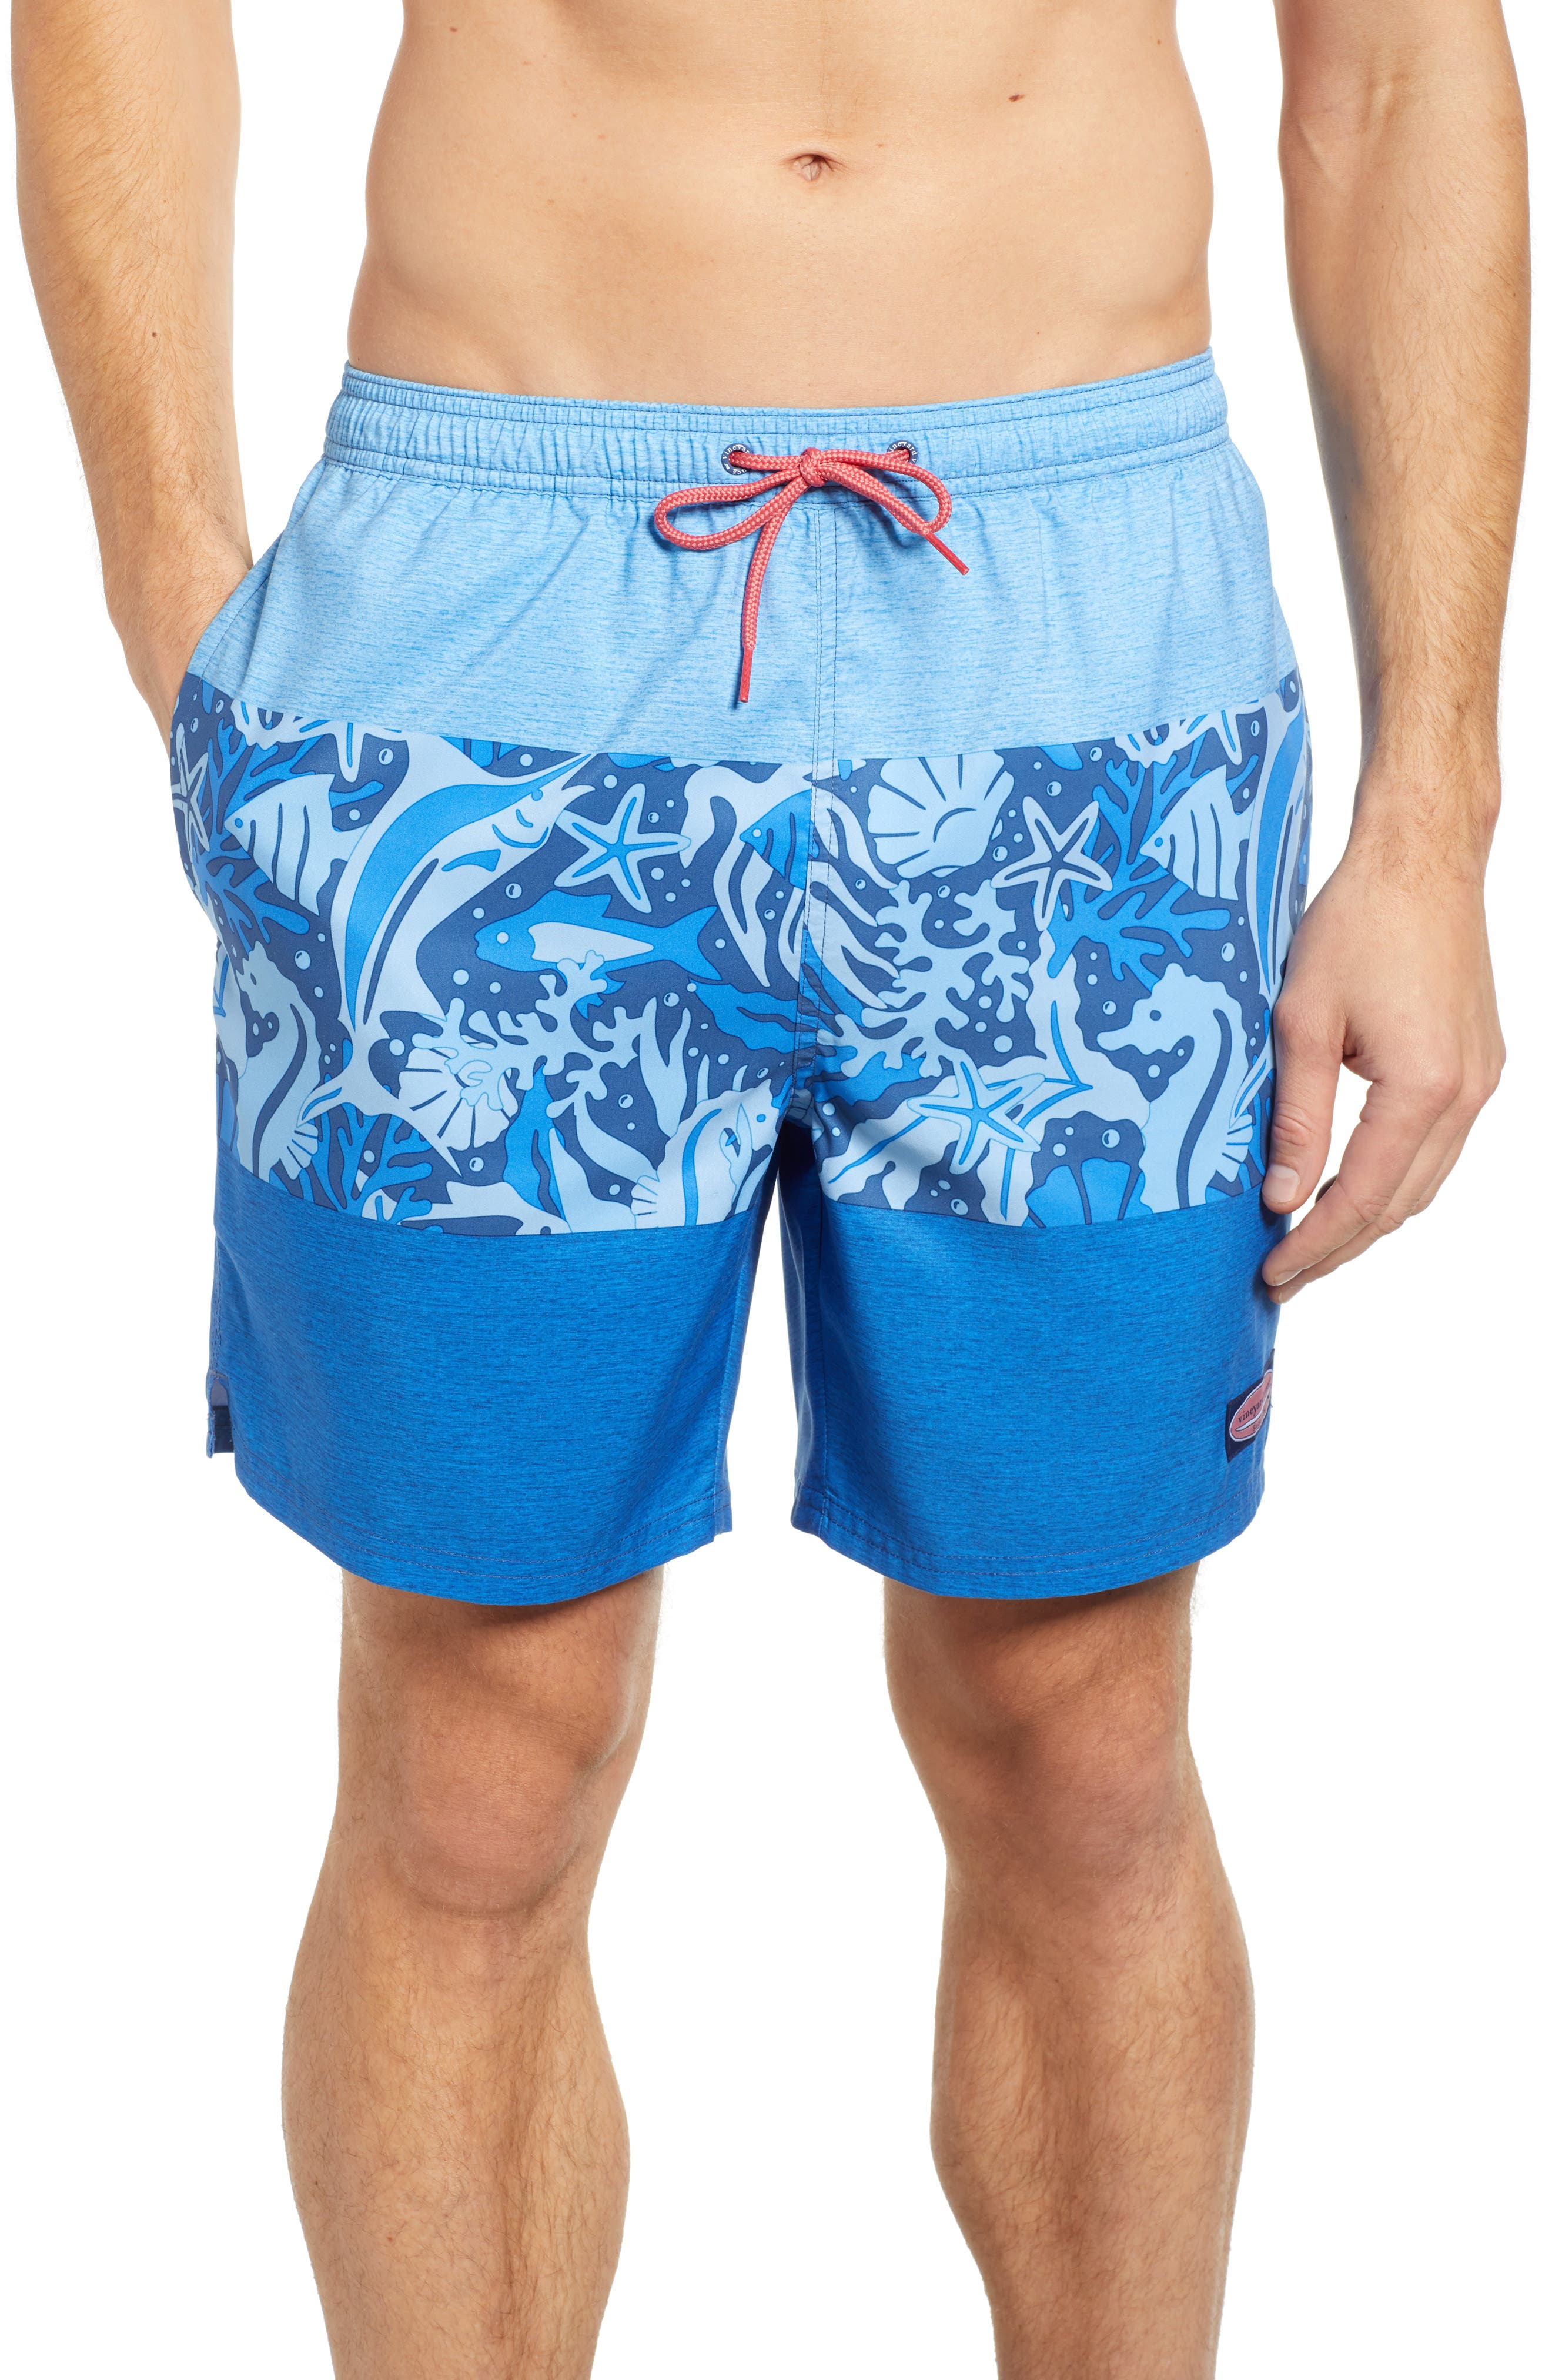 Under the Water Chappy Swim Trunks,                             Main thumbnail 1, color,                             MOONSHINE